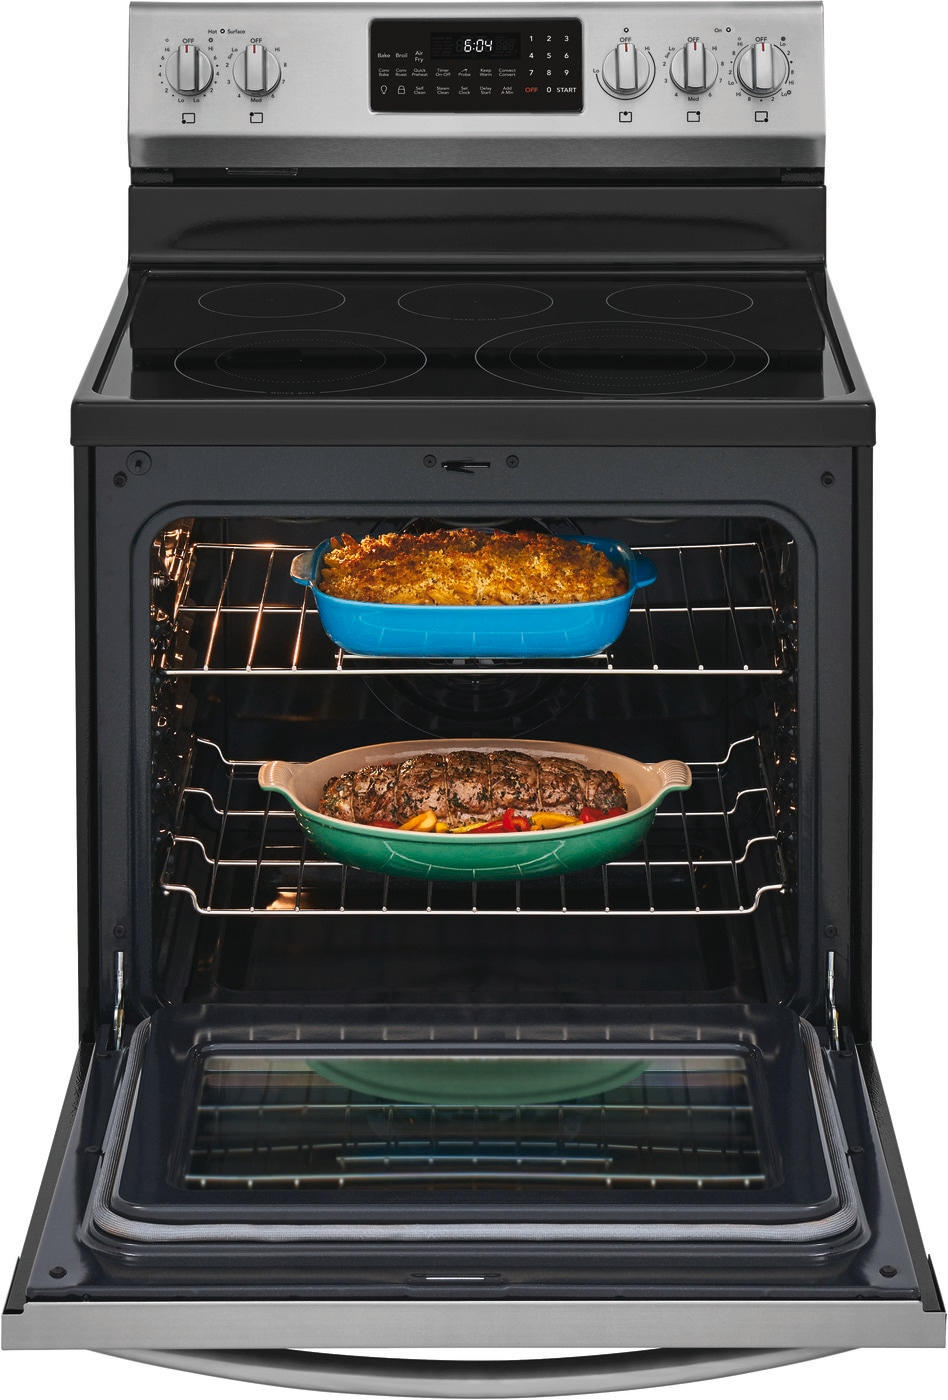 "30"" Freestanding Electric Range with Air Fry Stainless Steel GCRE306CAF"